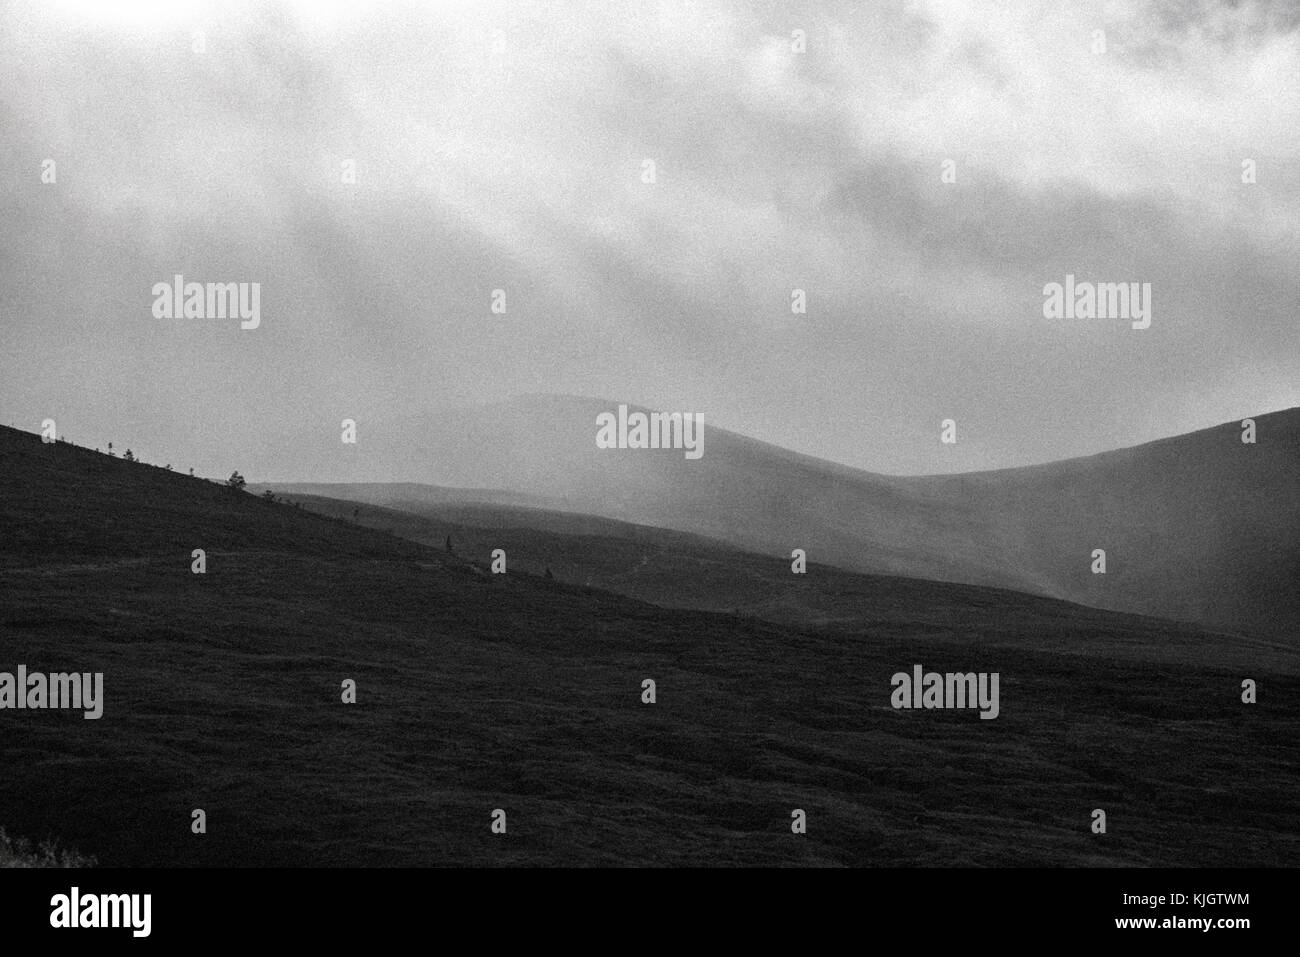 Black and white grainy mountain landscape - Stock Image